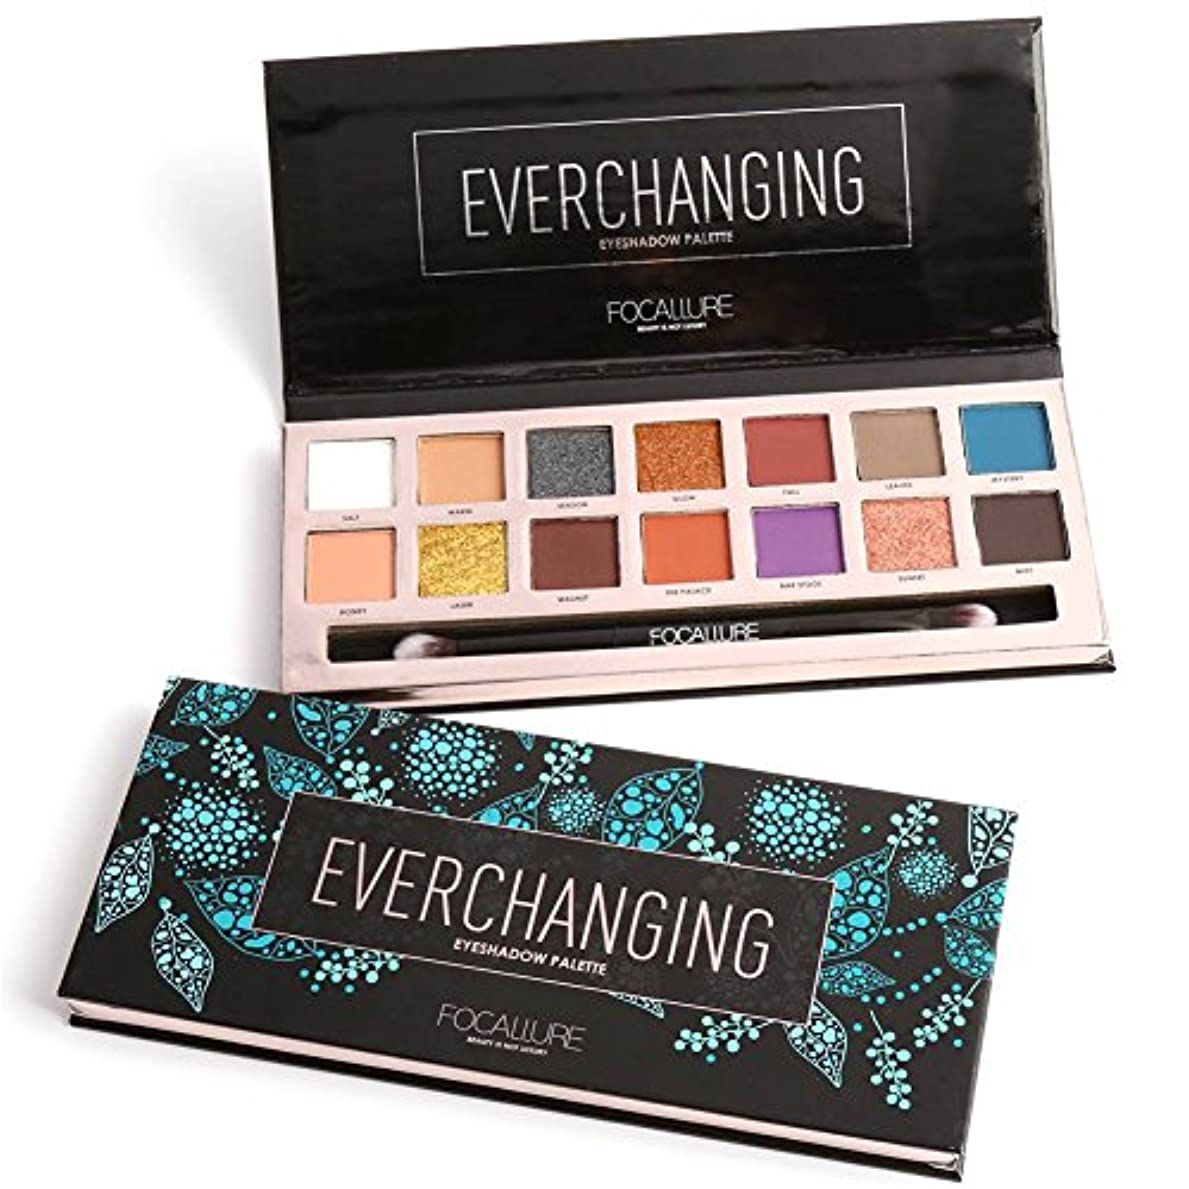 シットコム合わせて接ぎ木14 Colors Eyeshadow Palette Matte Glitter Shimmer Everchanging Eyeshadow Palette with Brush 14色のマット?グリッター?シマーEverchanging...